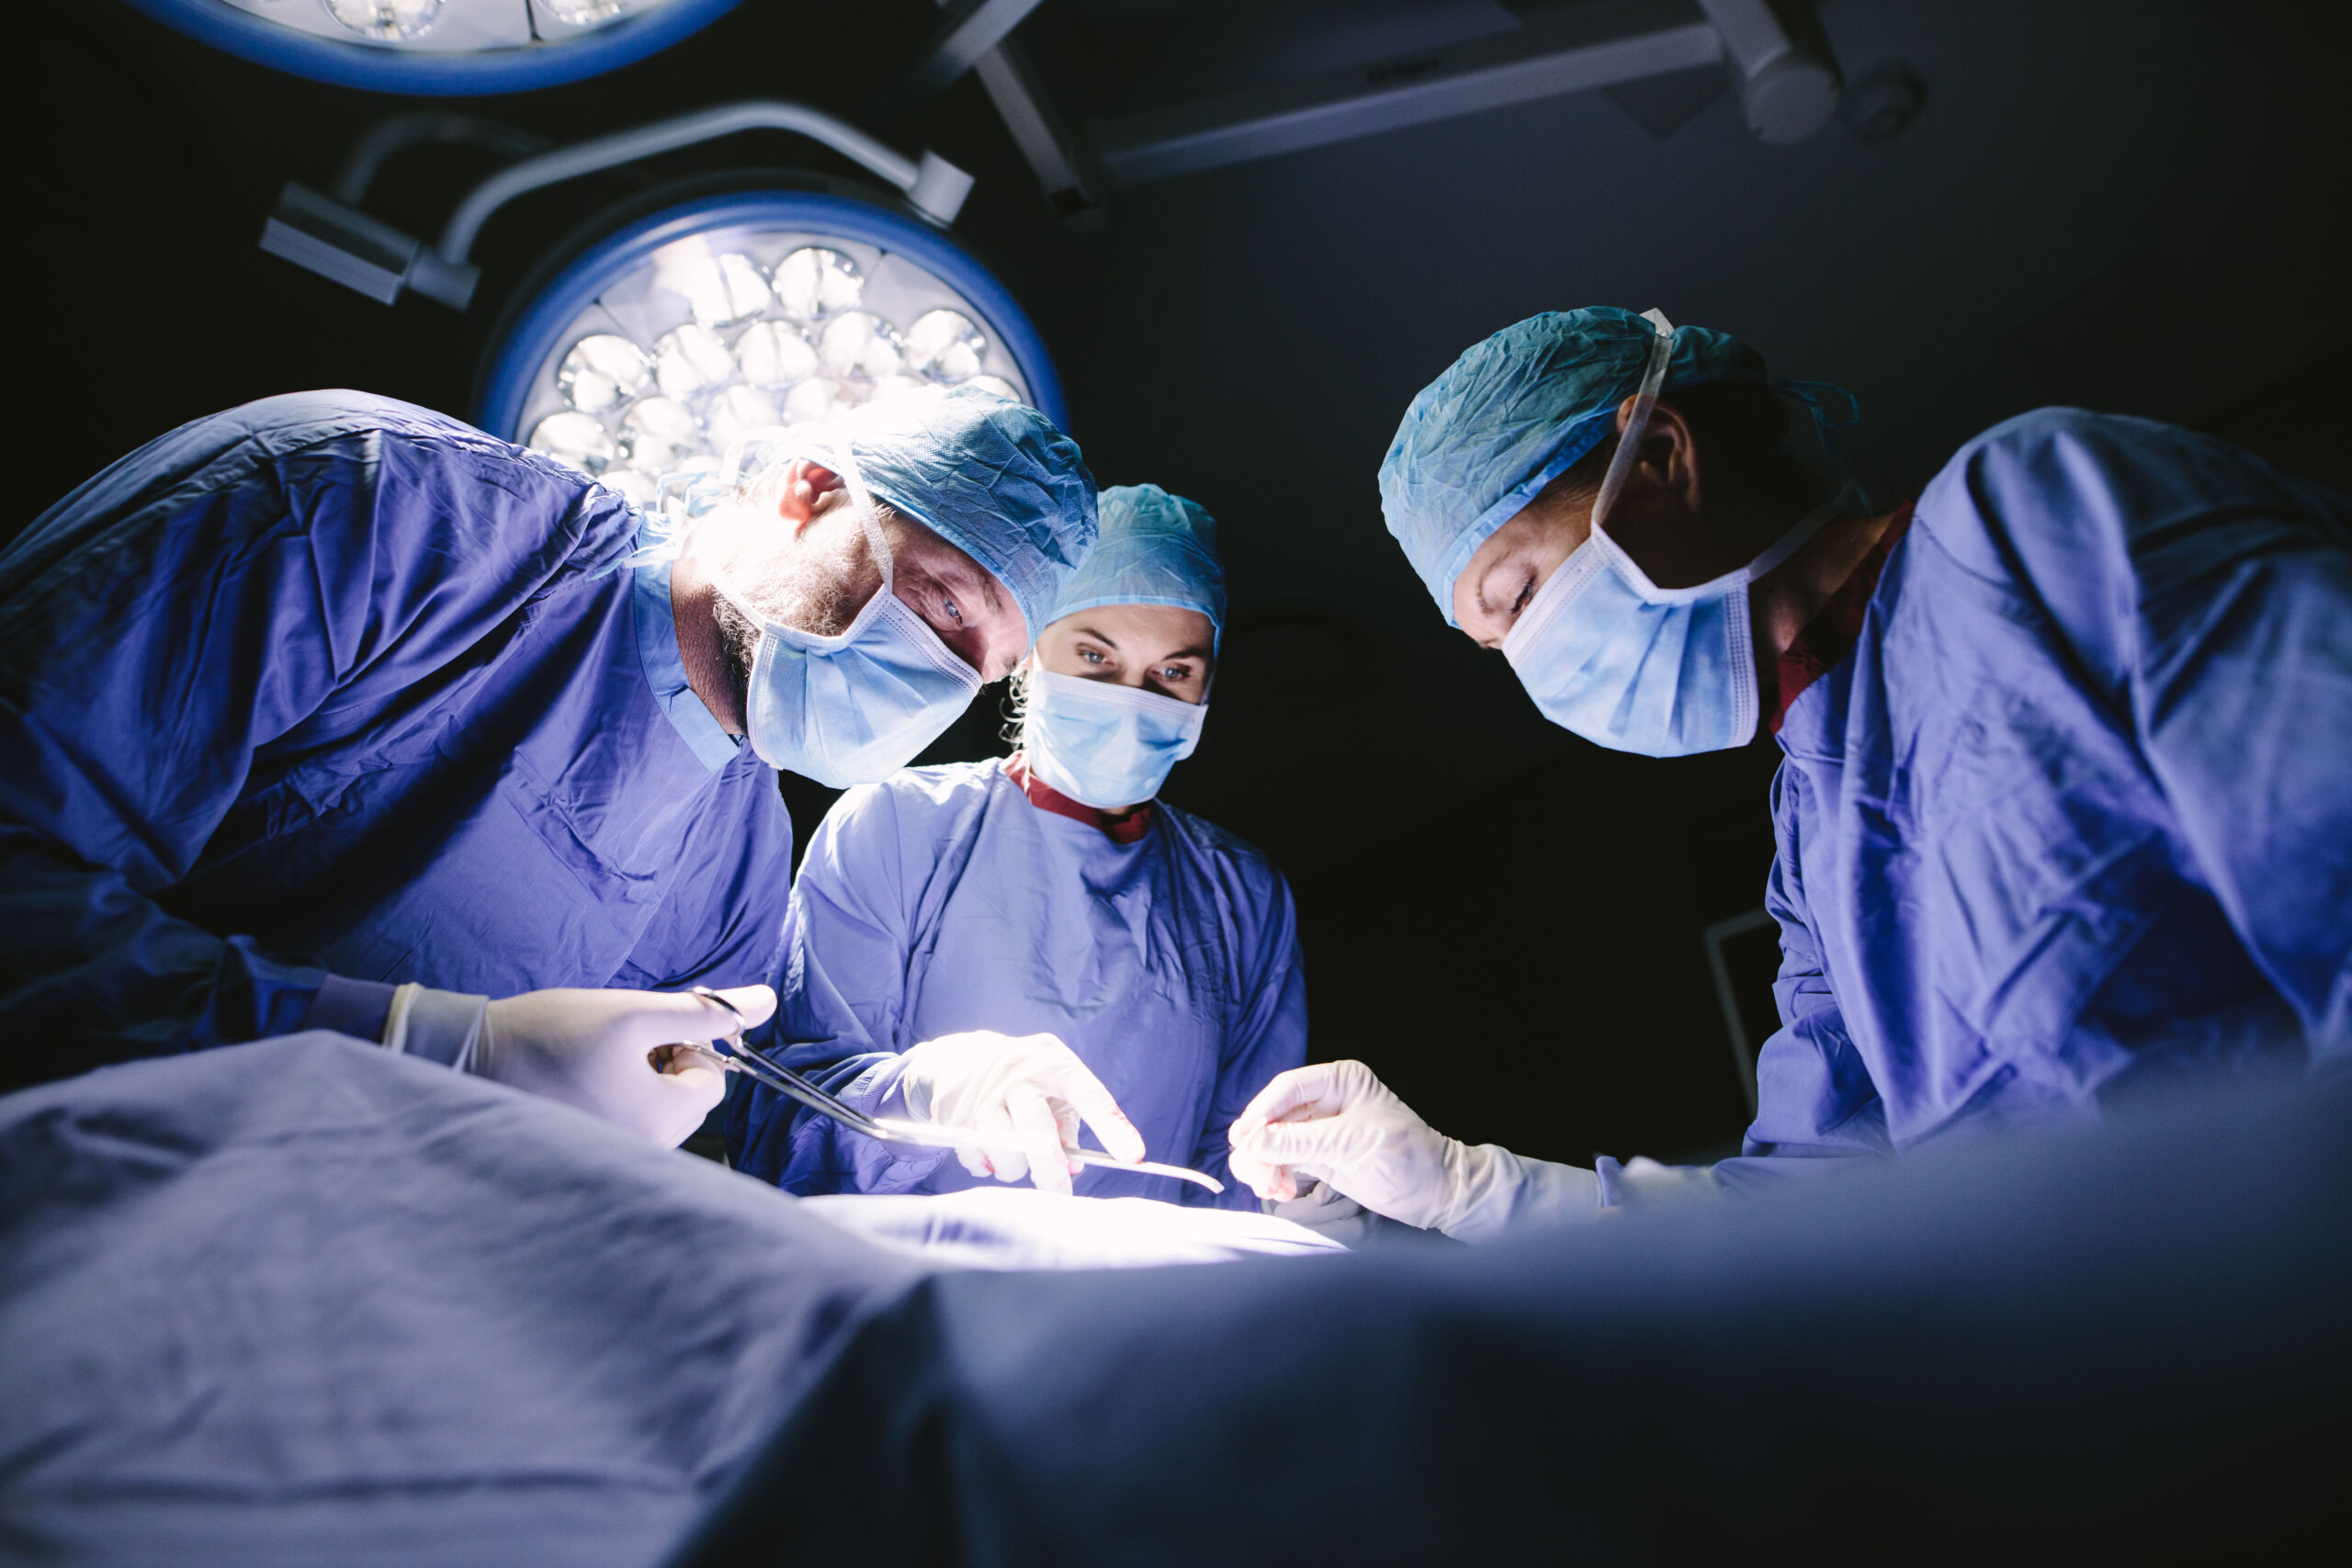 healthcare marketing surgeons in operating room